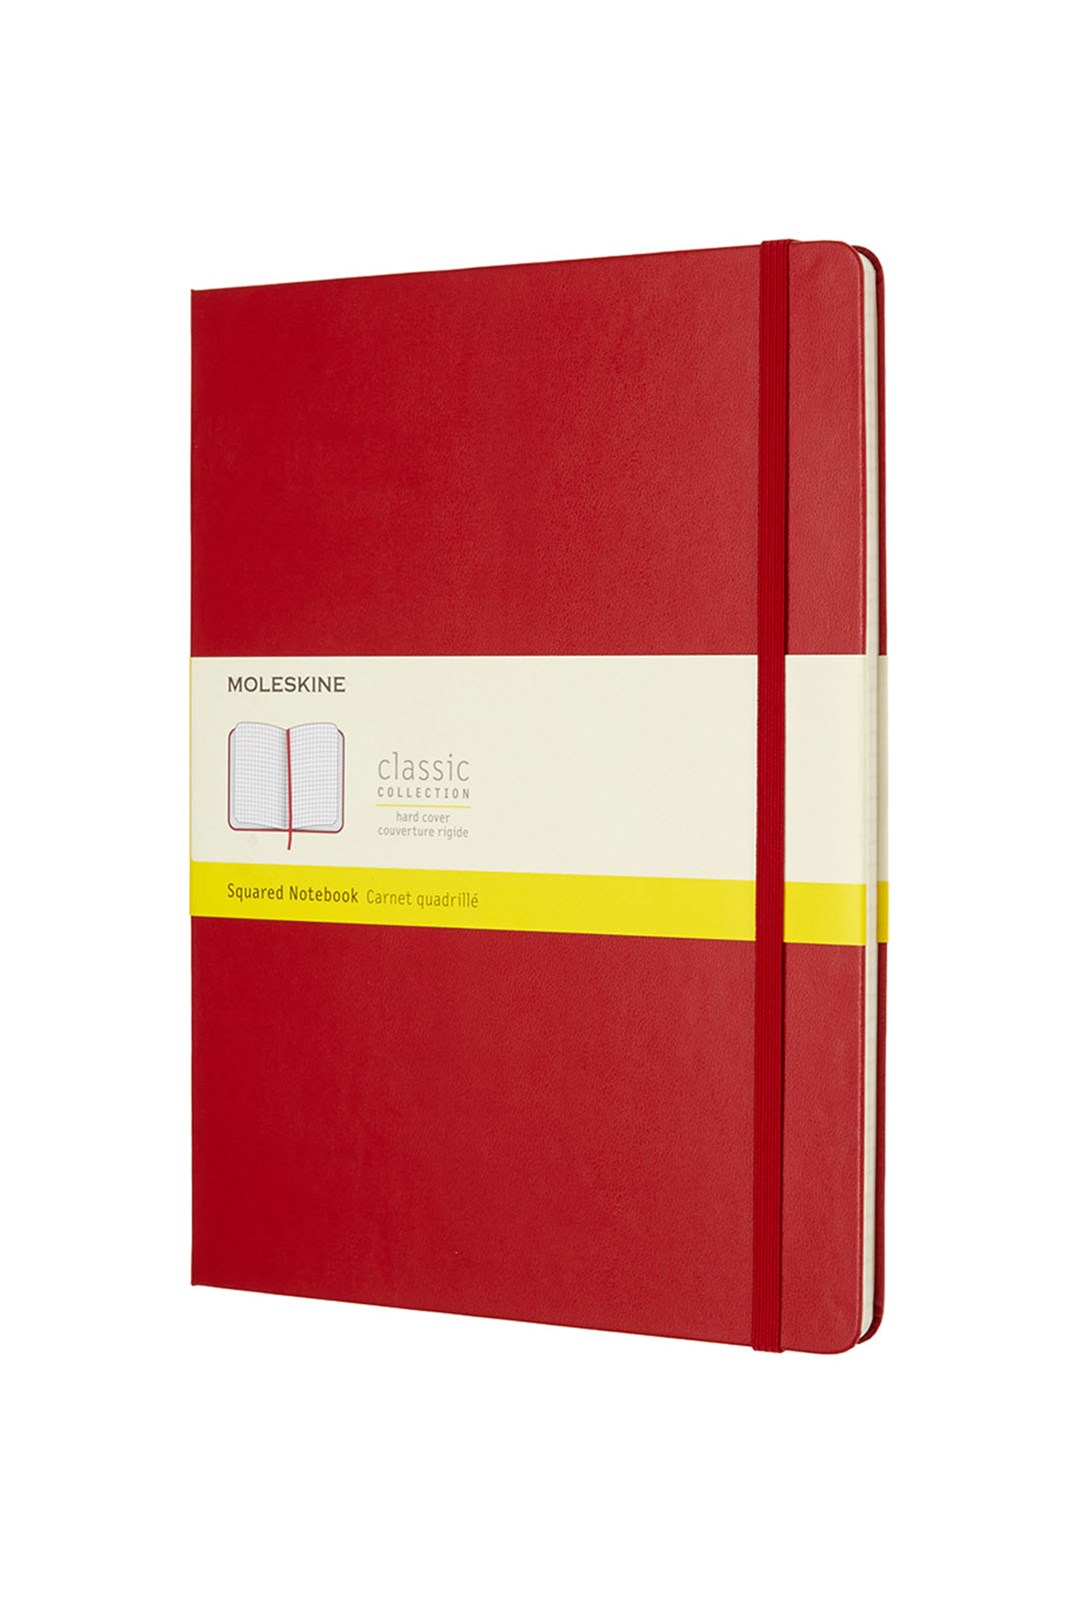 Moleskine - Classic Hard Cover Notebook - Grid - Extra Large - Scarlet Red